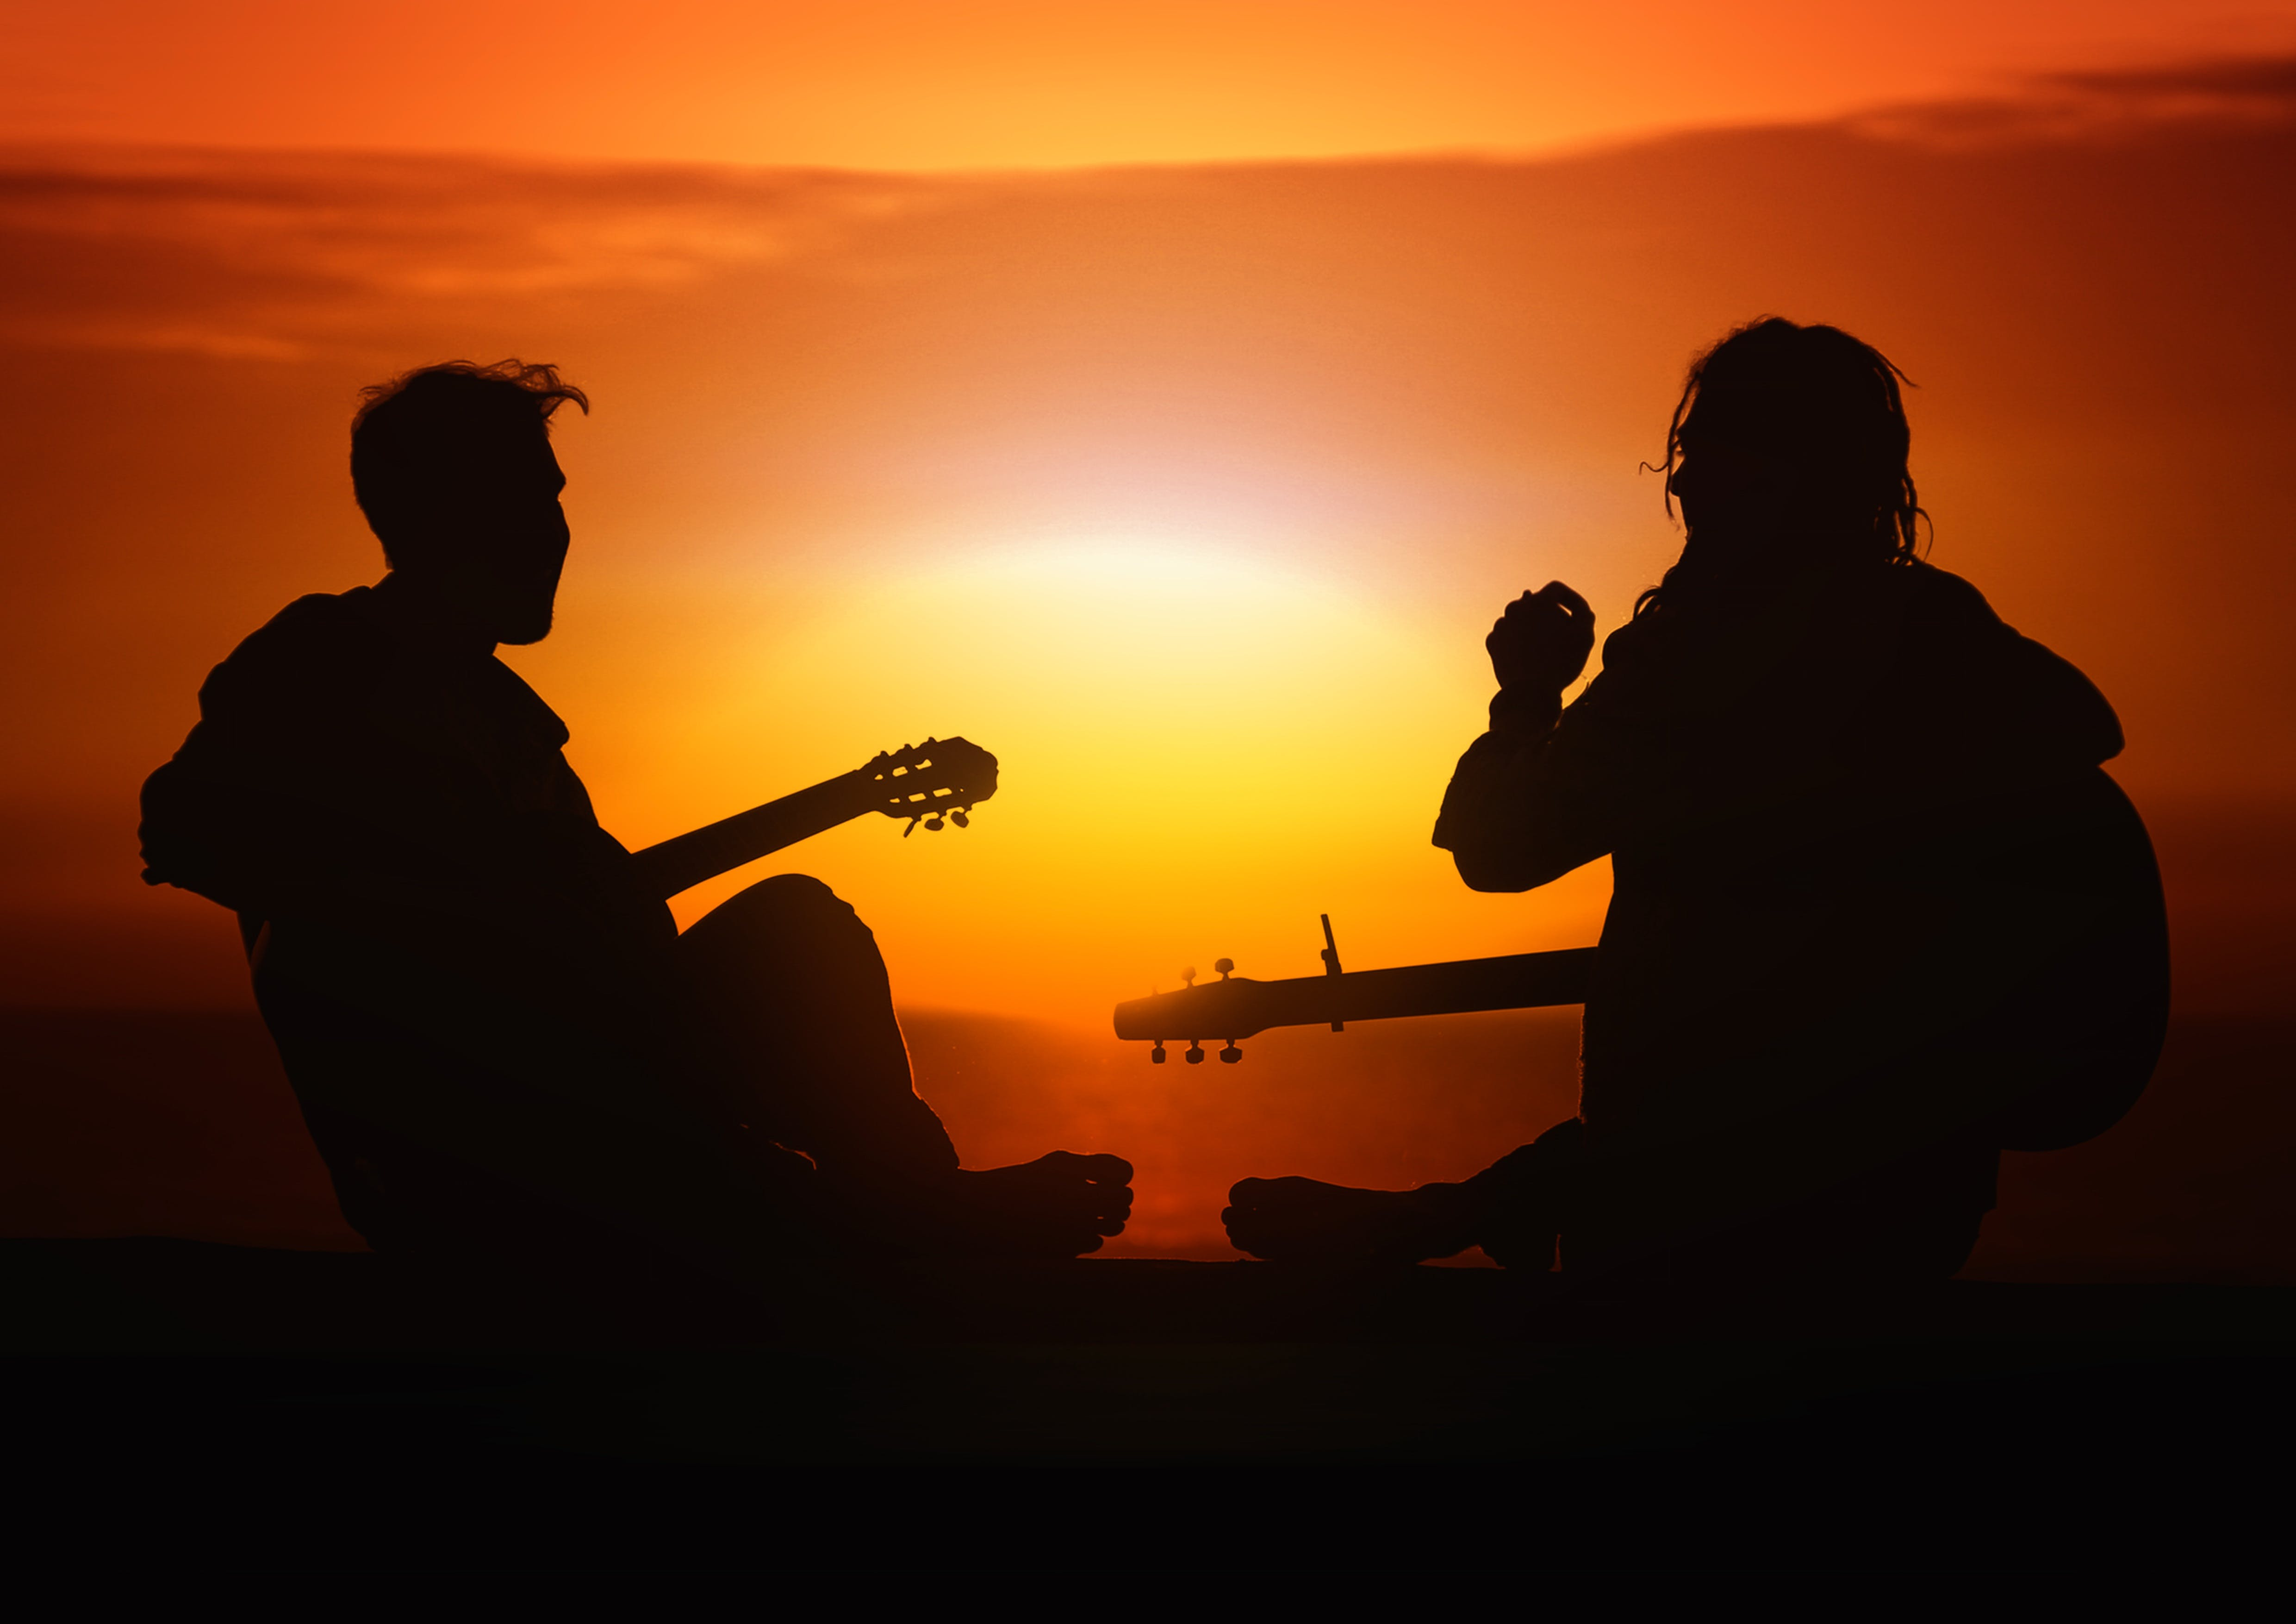 Silhouette Photography of Men Holding Guitar